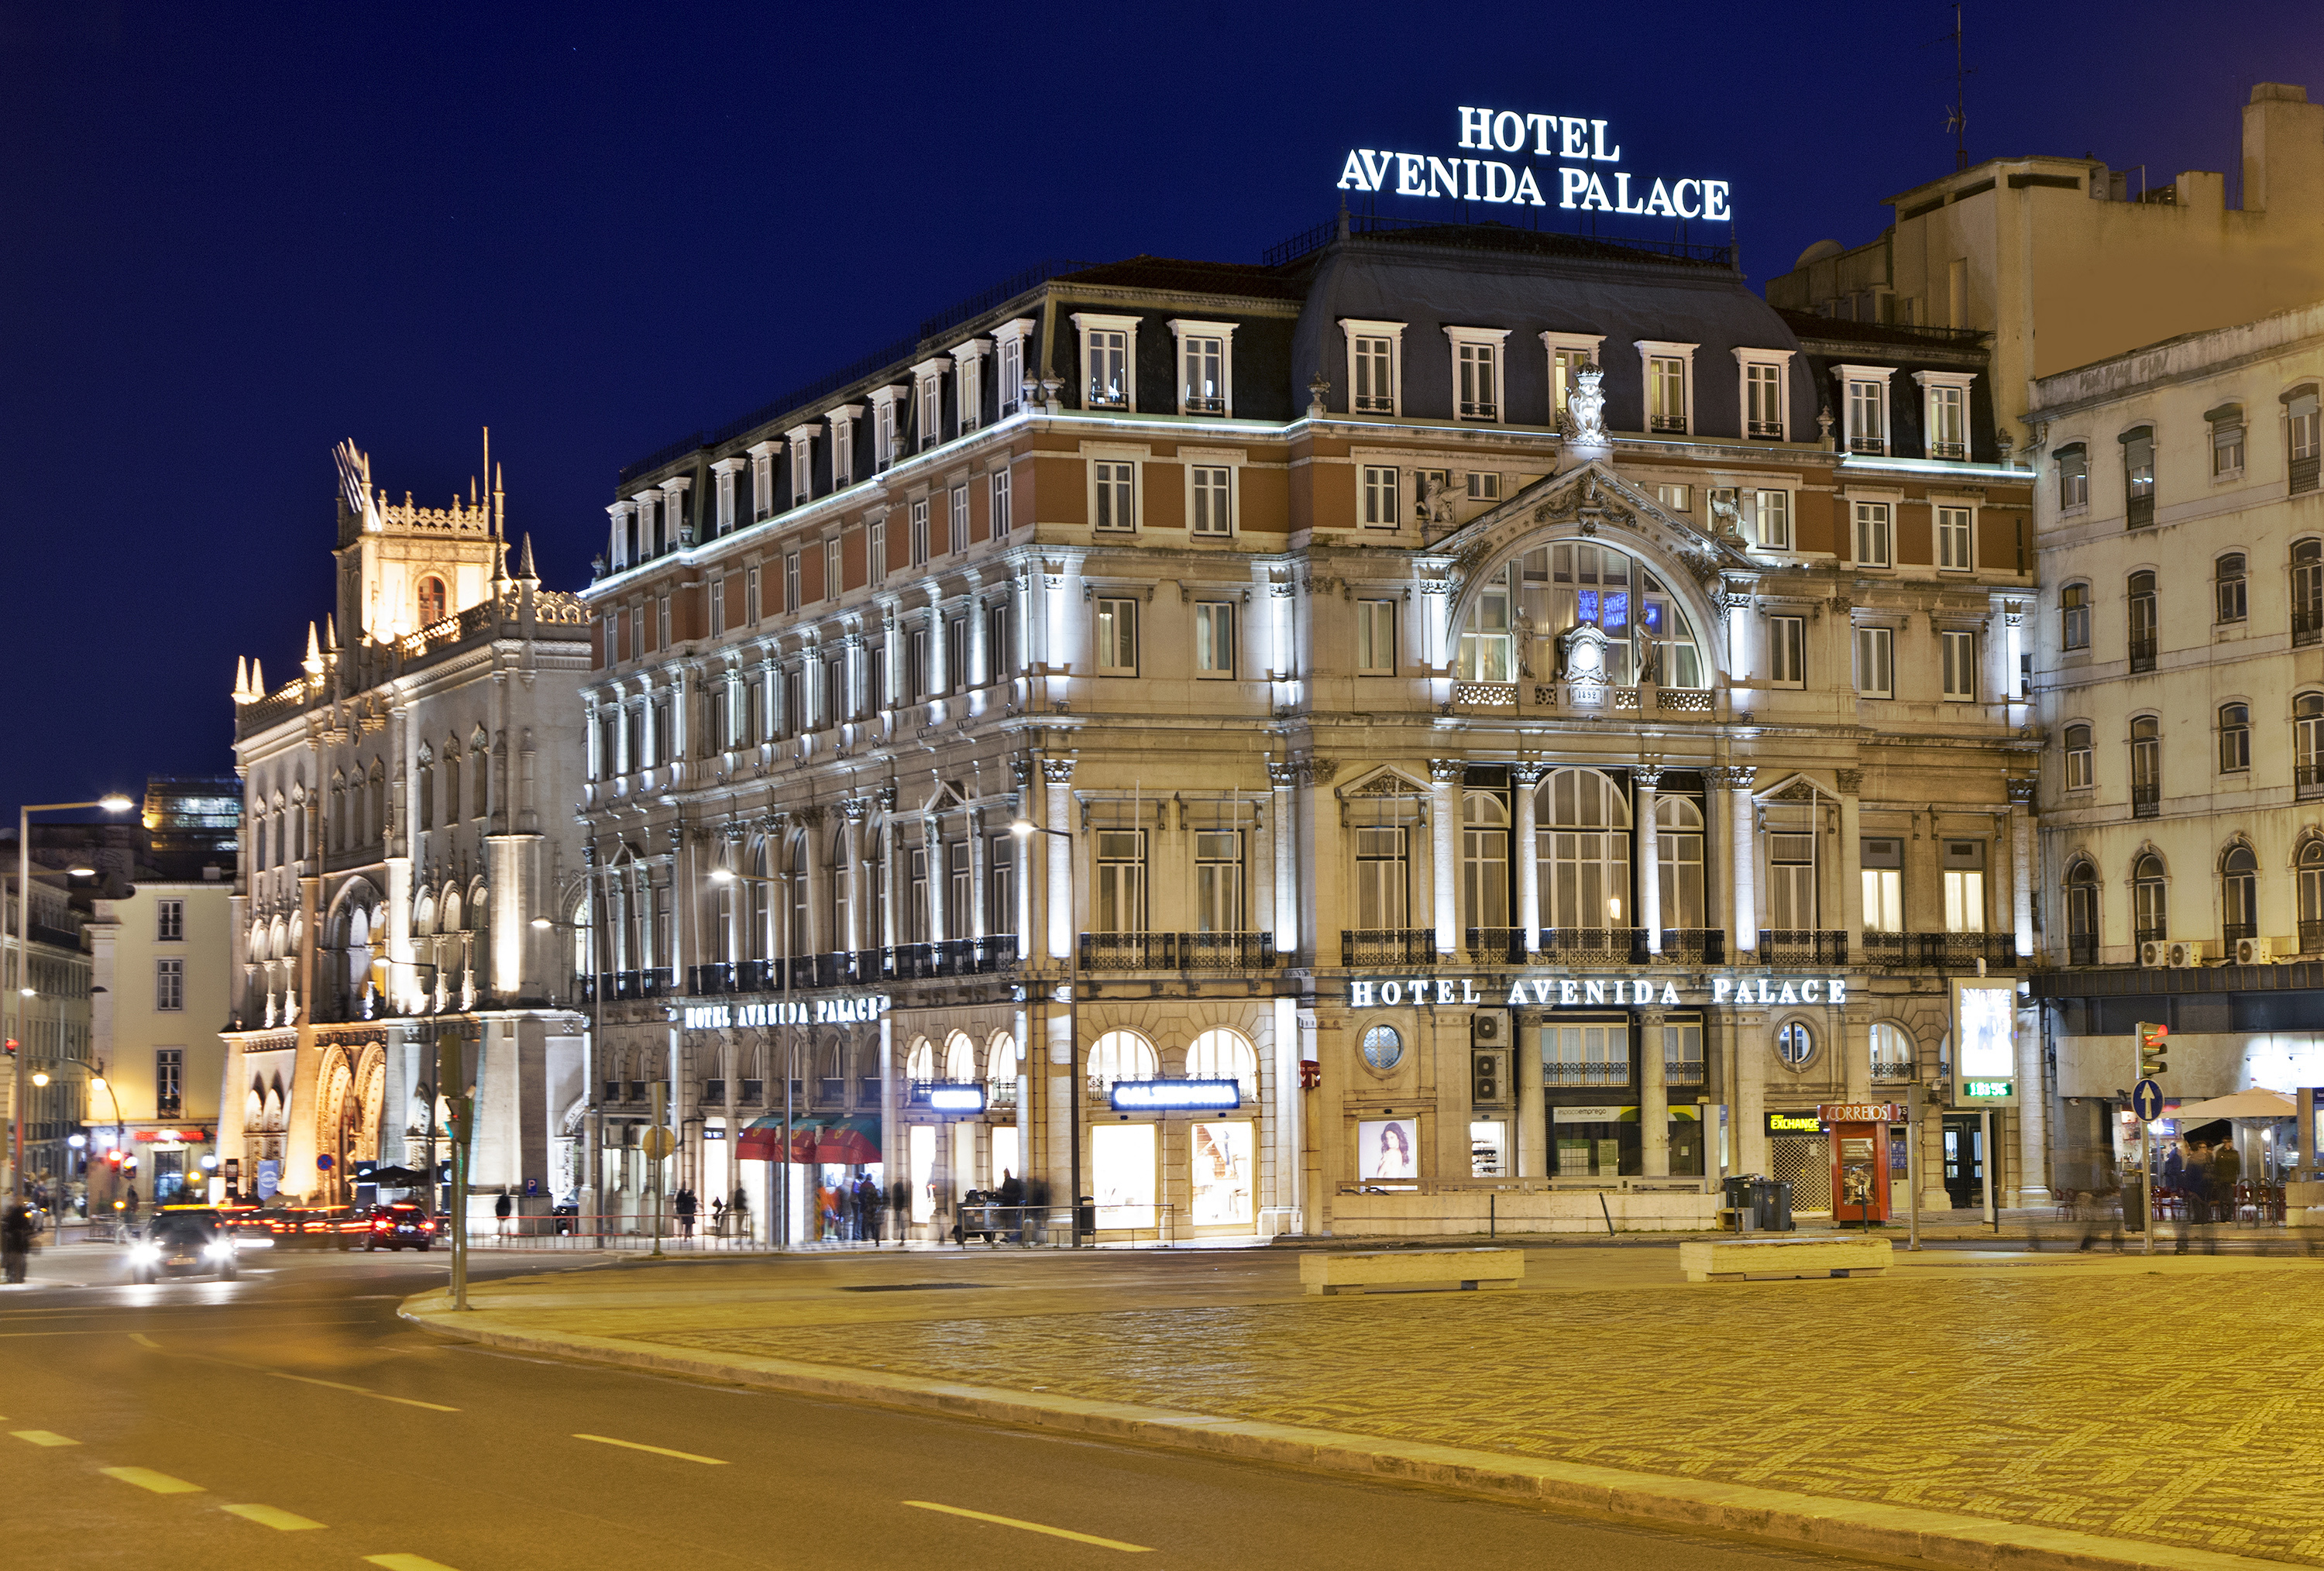 Hotel Avenida Palace The Best Hotels In Baixa And Rossio Where To Stay In Lisbon